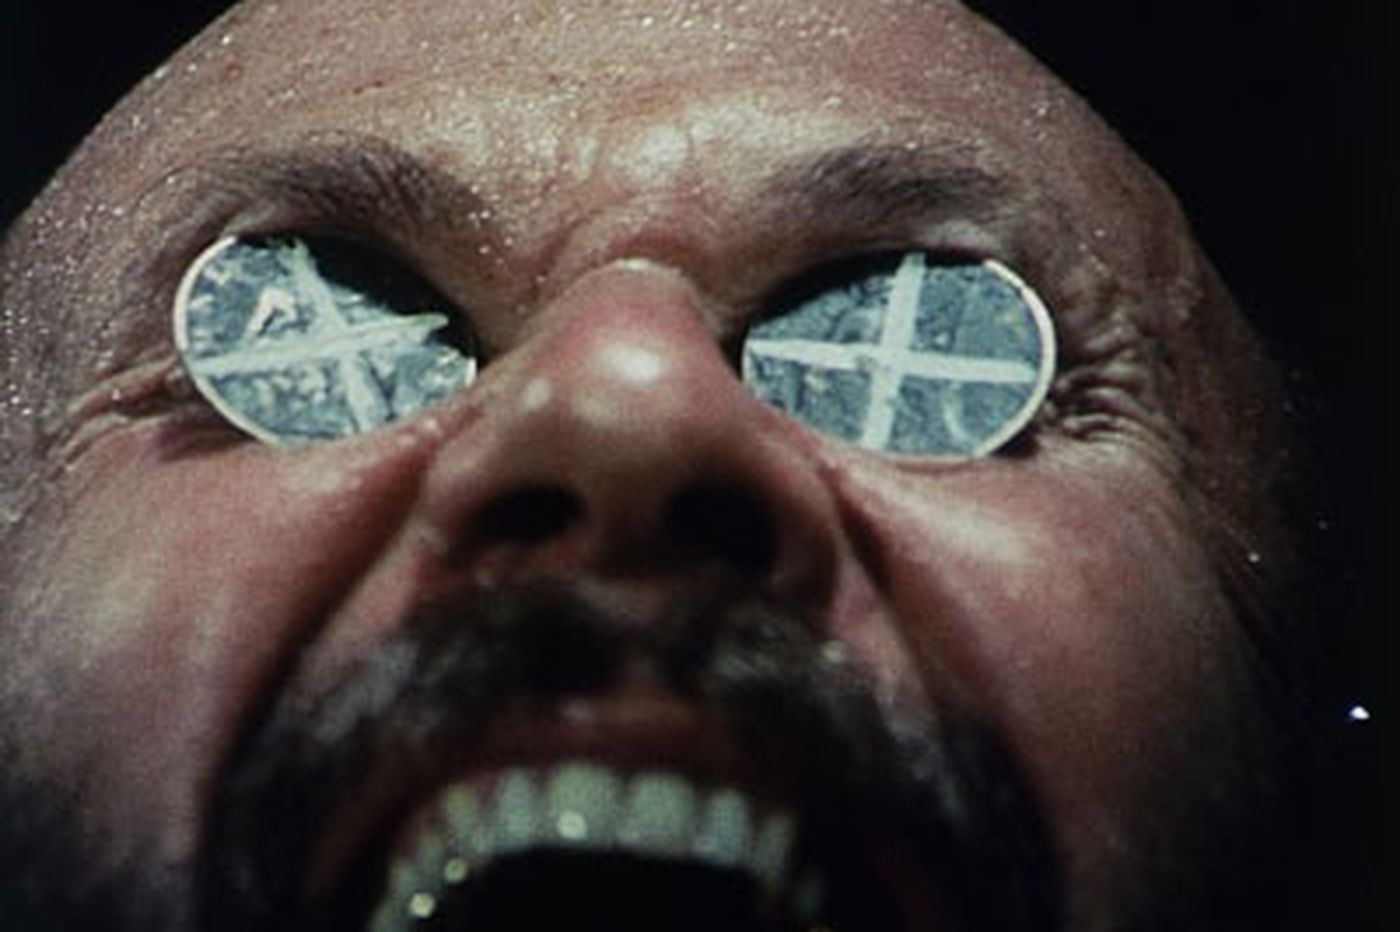 'Wake in Fright' from 1971: Male brutality in Outback setting